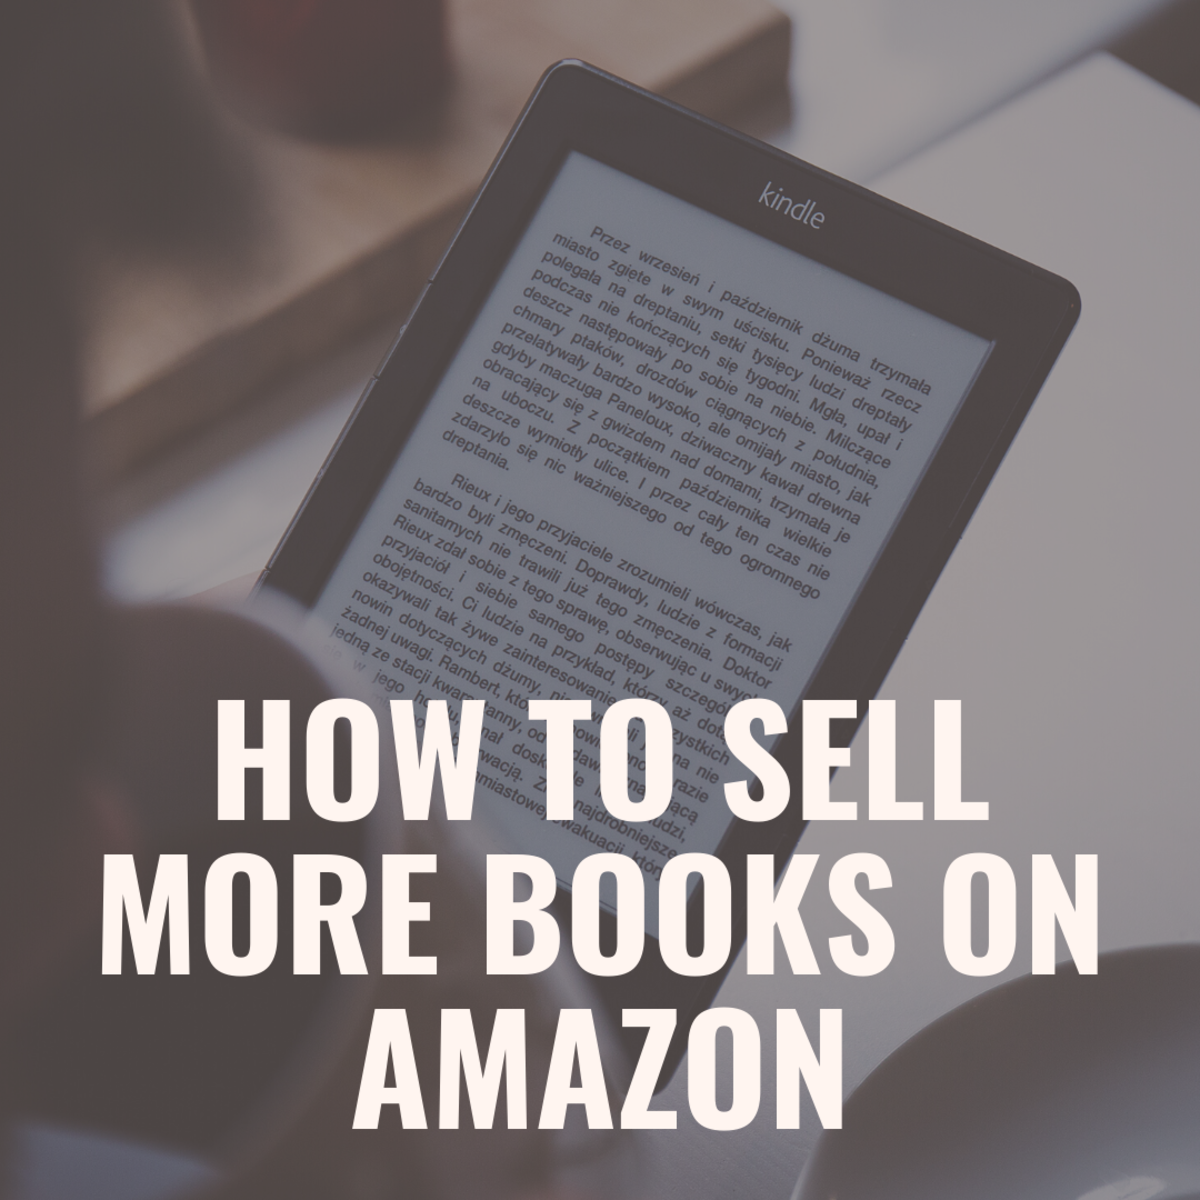 6 Tips to Sell More Books on Amazon